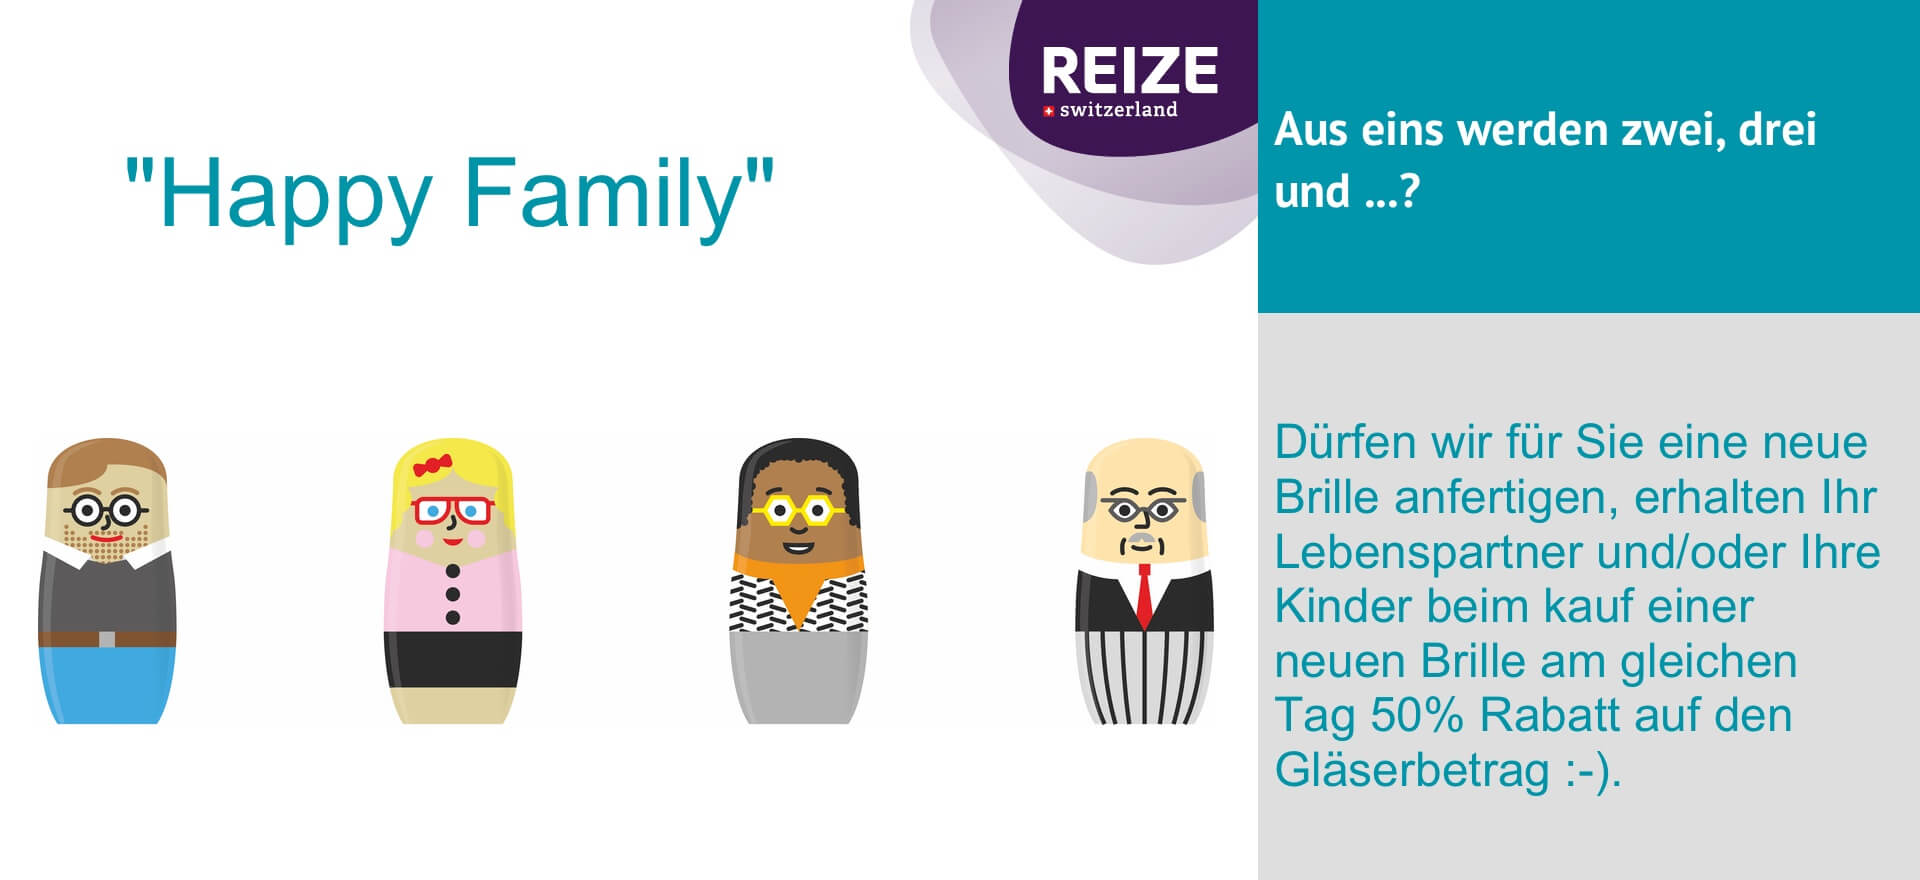 titelvorlage-happy-family-JPEG